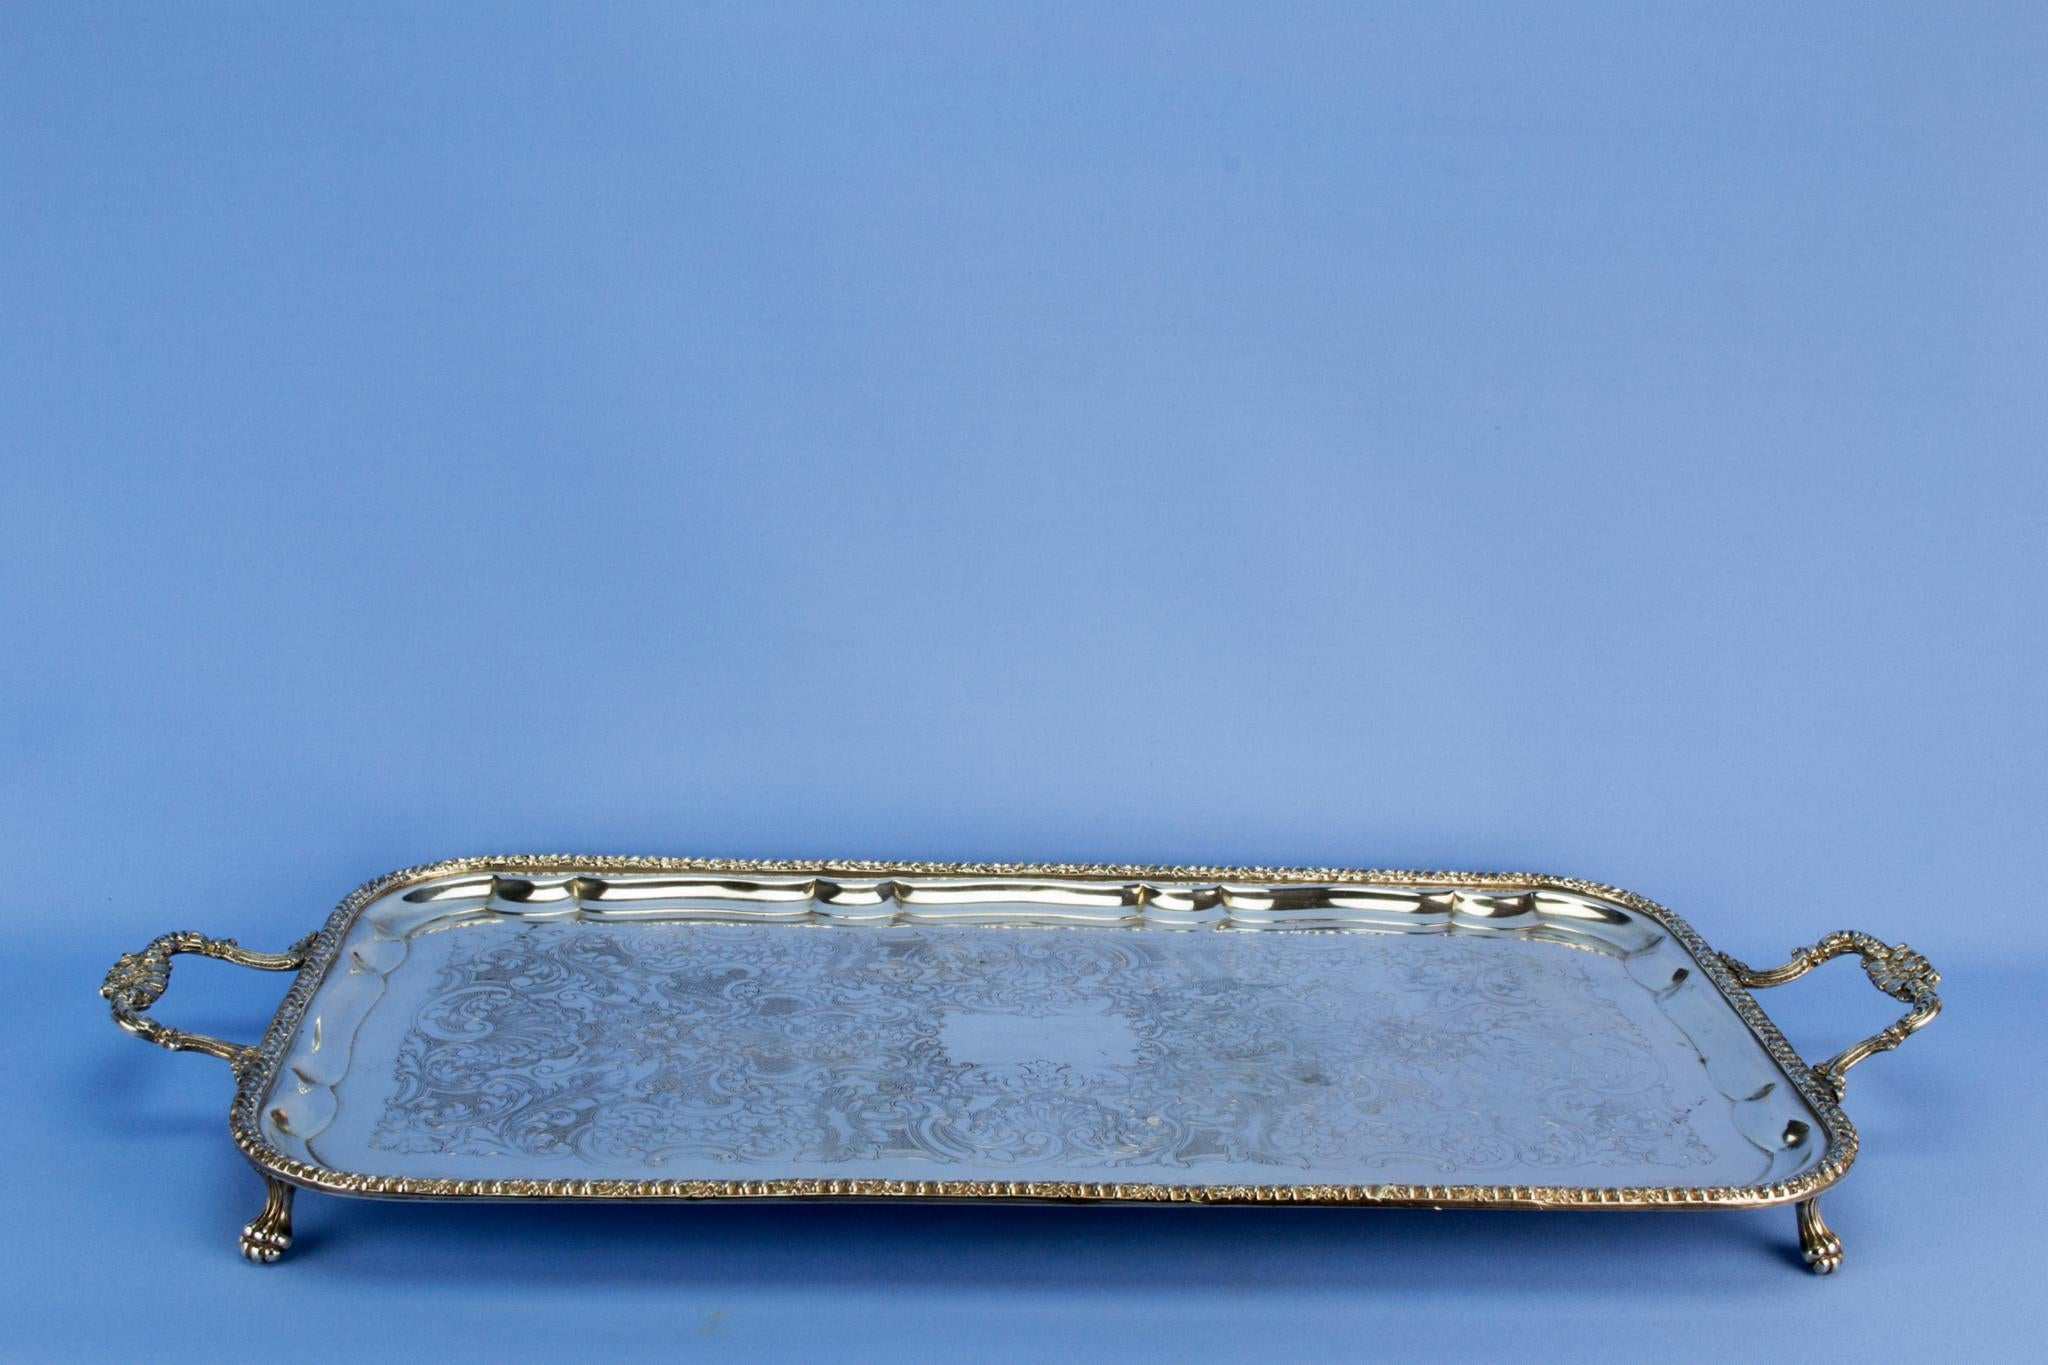 Large silver plated drinks serving tray